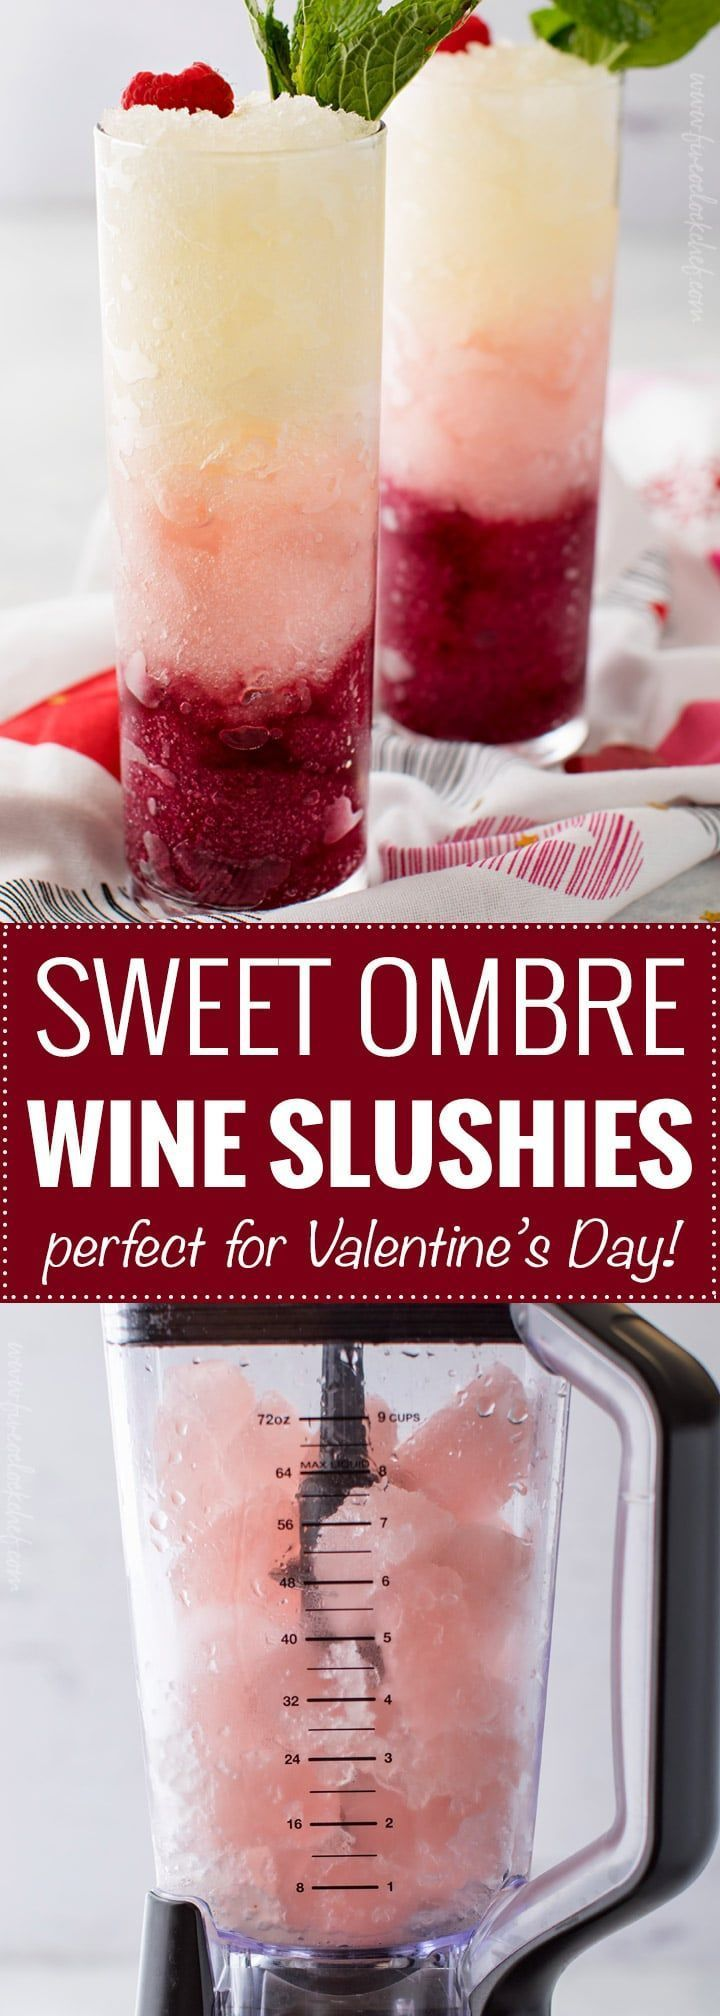 Sweet Ombre Wine Slushies Three Types Of Sweet Wine Are Frozen Into Ice Cubes Blended And Layered To Create A Drink That S Wine Slushie Slushies Sweet Wine